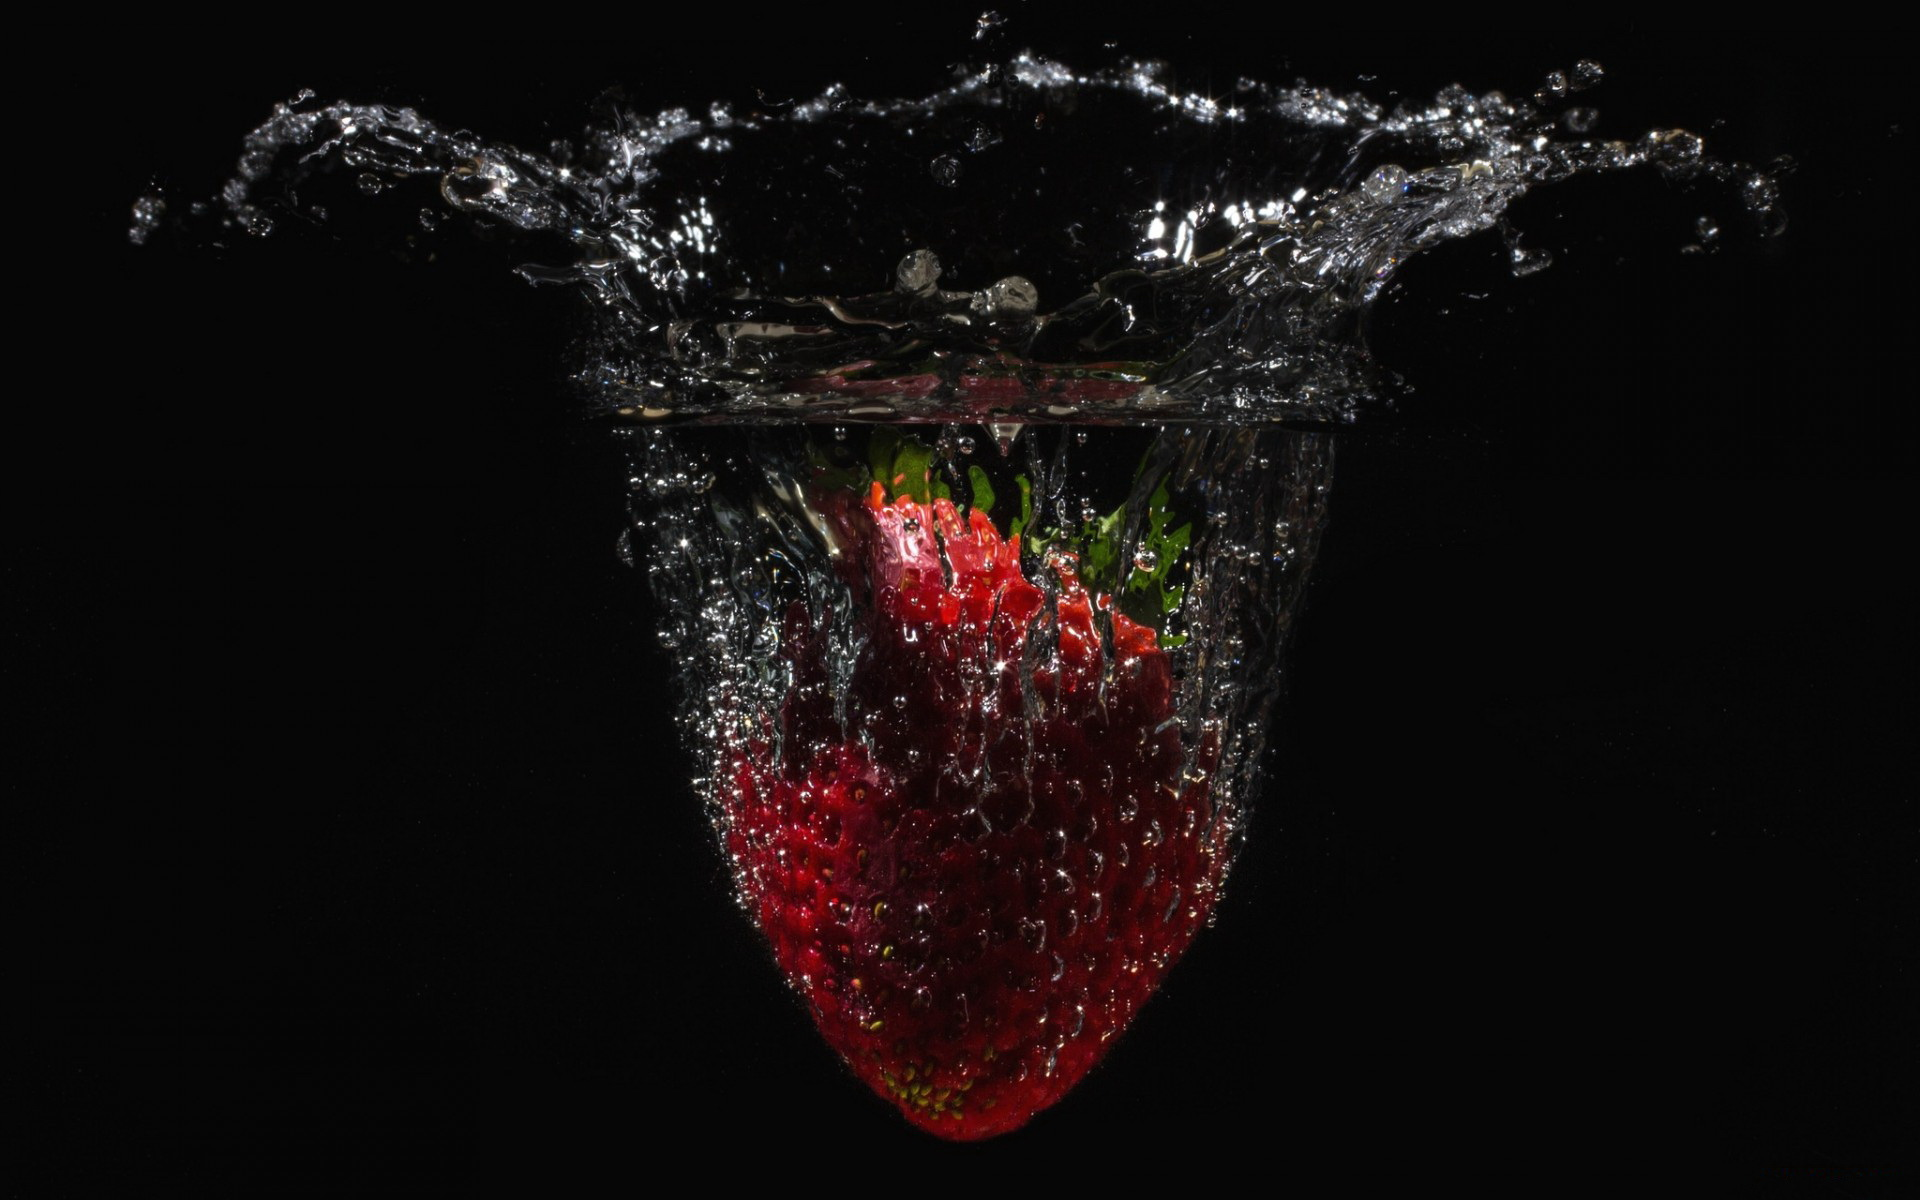 Best Food and Drink Wallpaper: Strawberry 38964143 Food and Drink